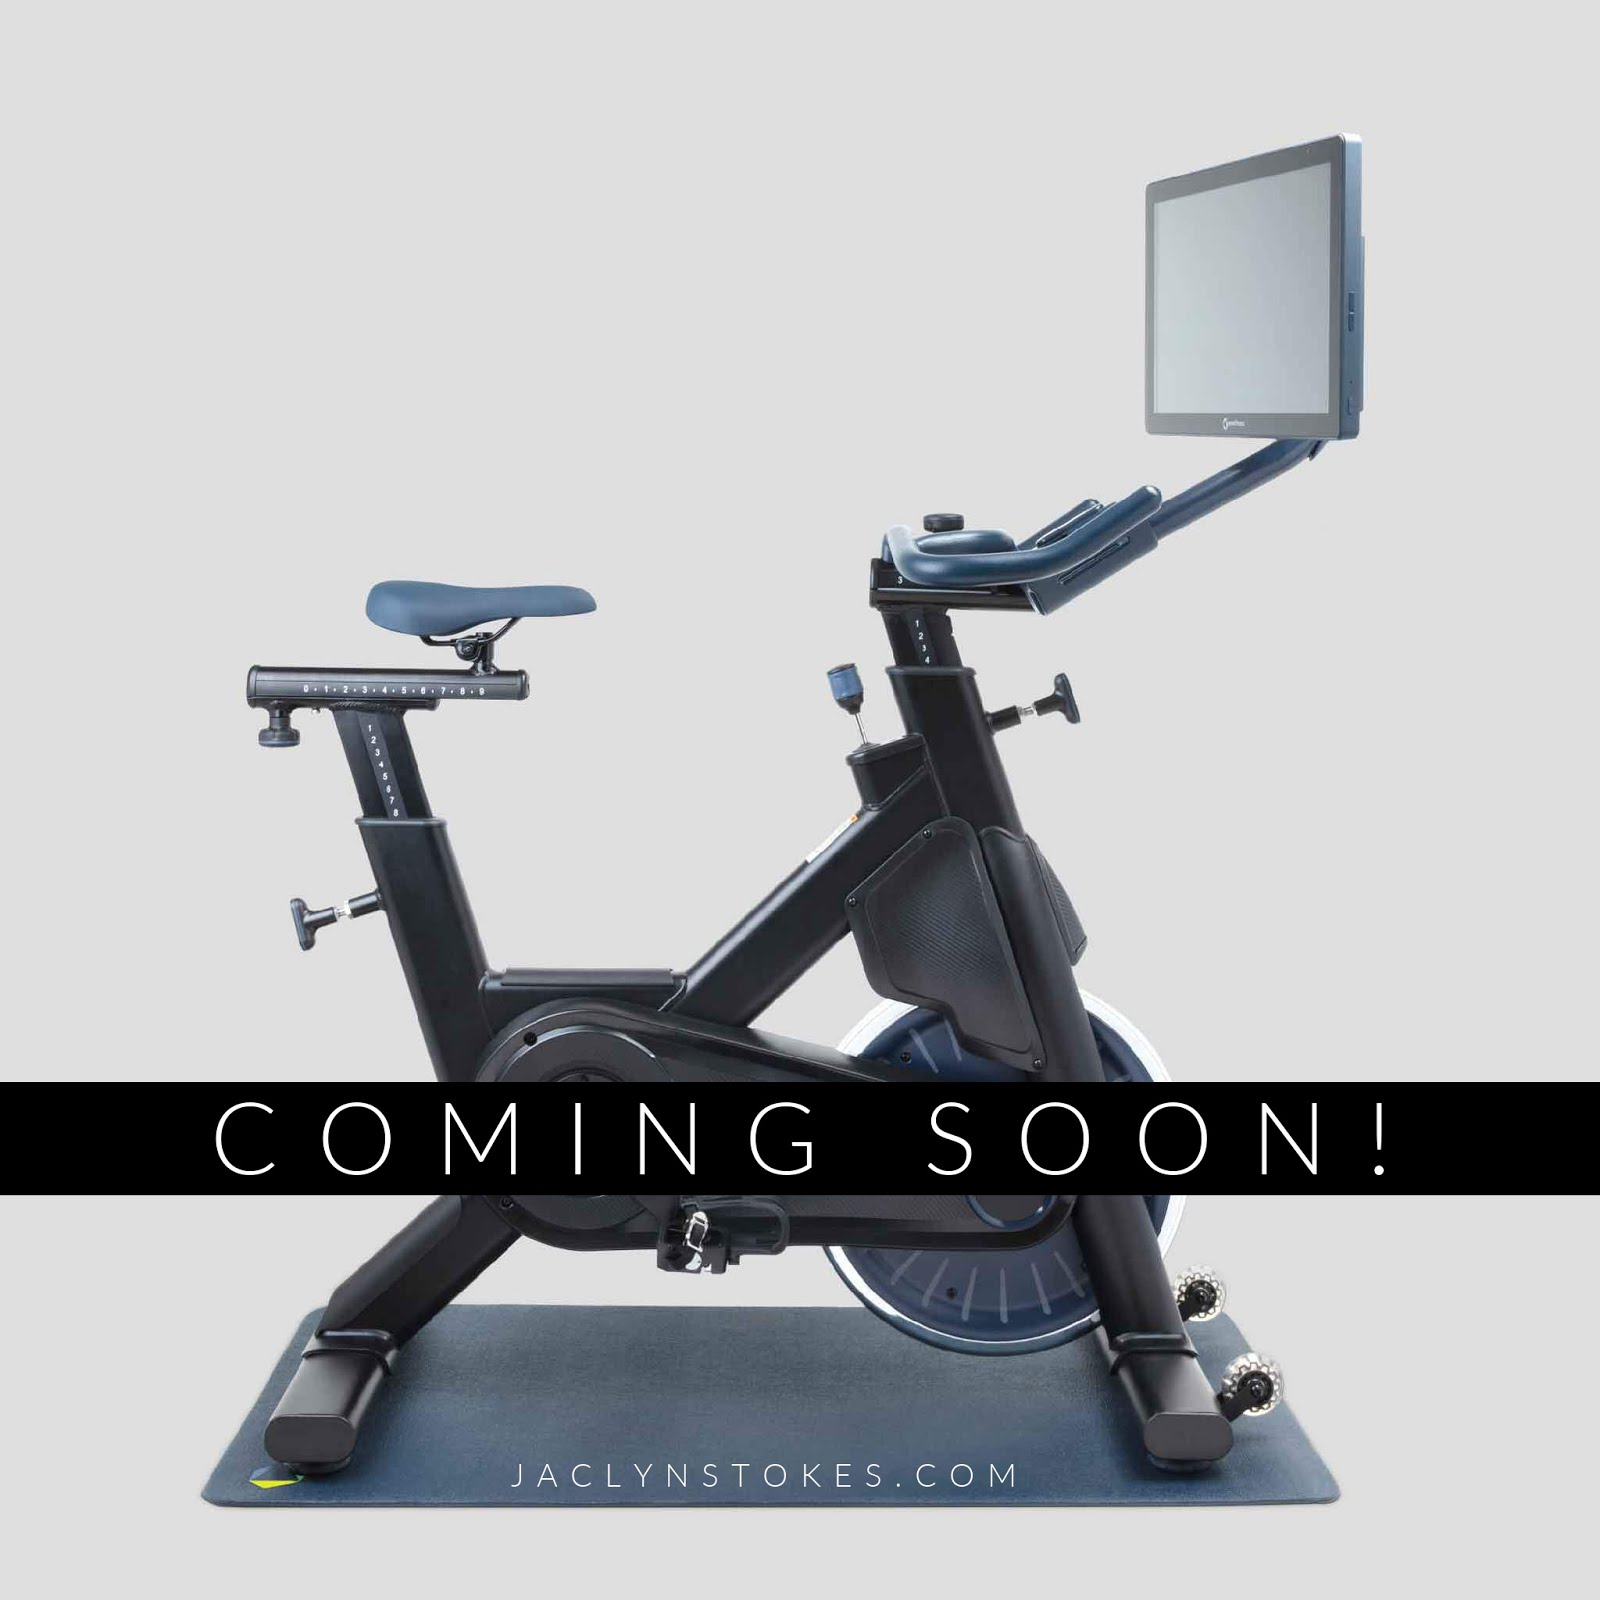 NEW SPIN BIKE COMING SOON!